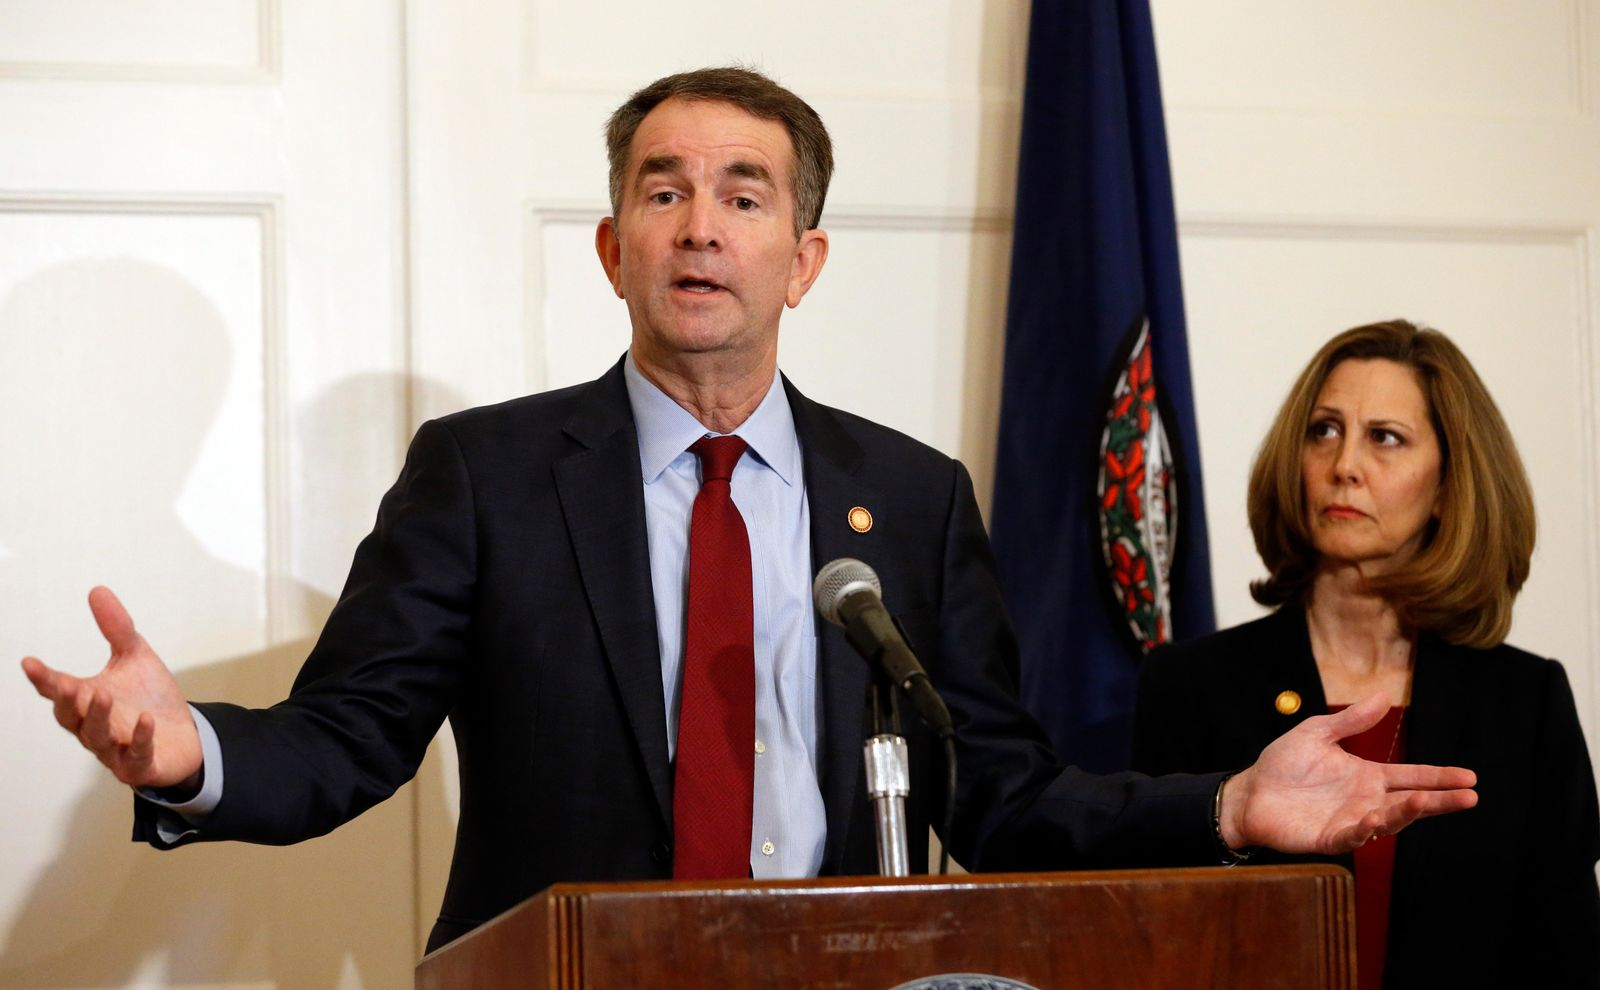 In this Feb. 2, 2019, photo, Virginia Gov. Ralph Northam, left, accompanied by his wife, Pam, speaks during a news conference in the governor's mansion in Richmond, Va. (AP Photo/Steve Helber)